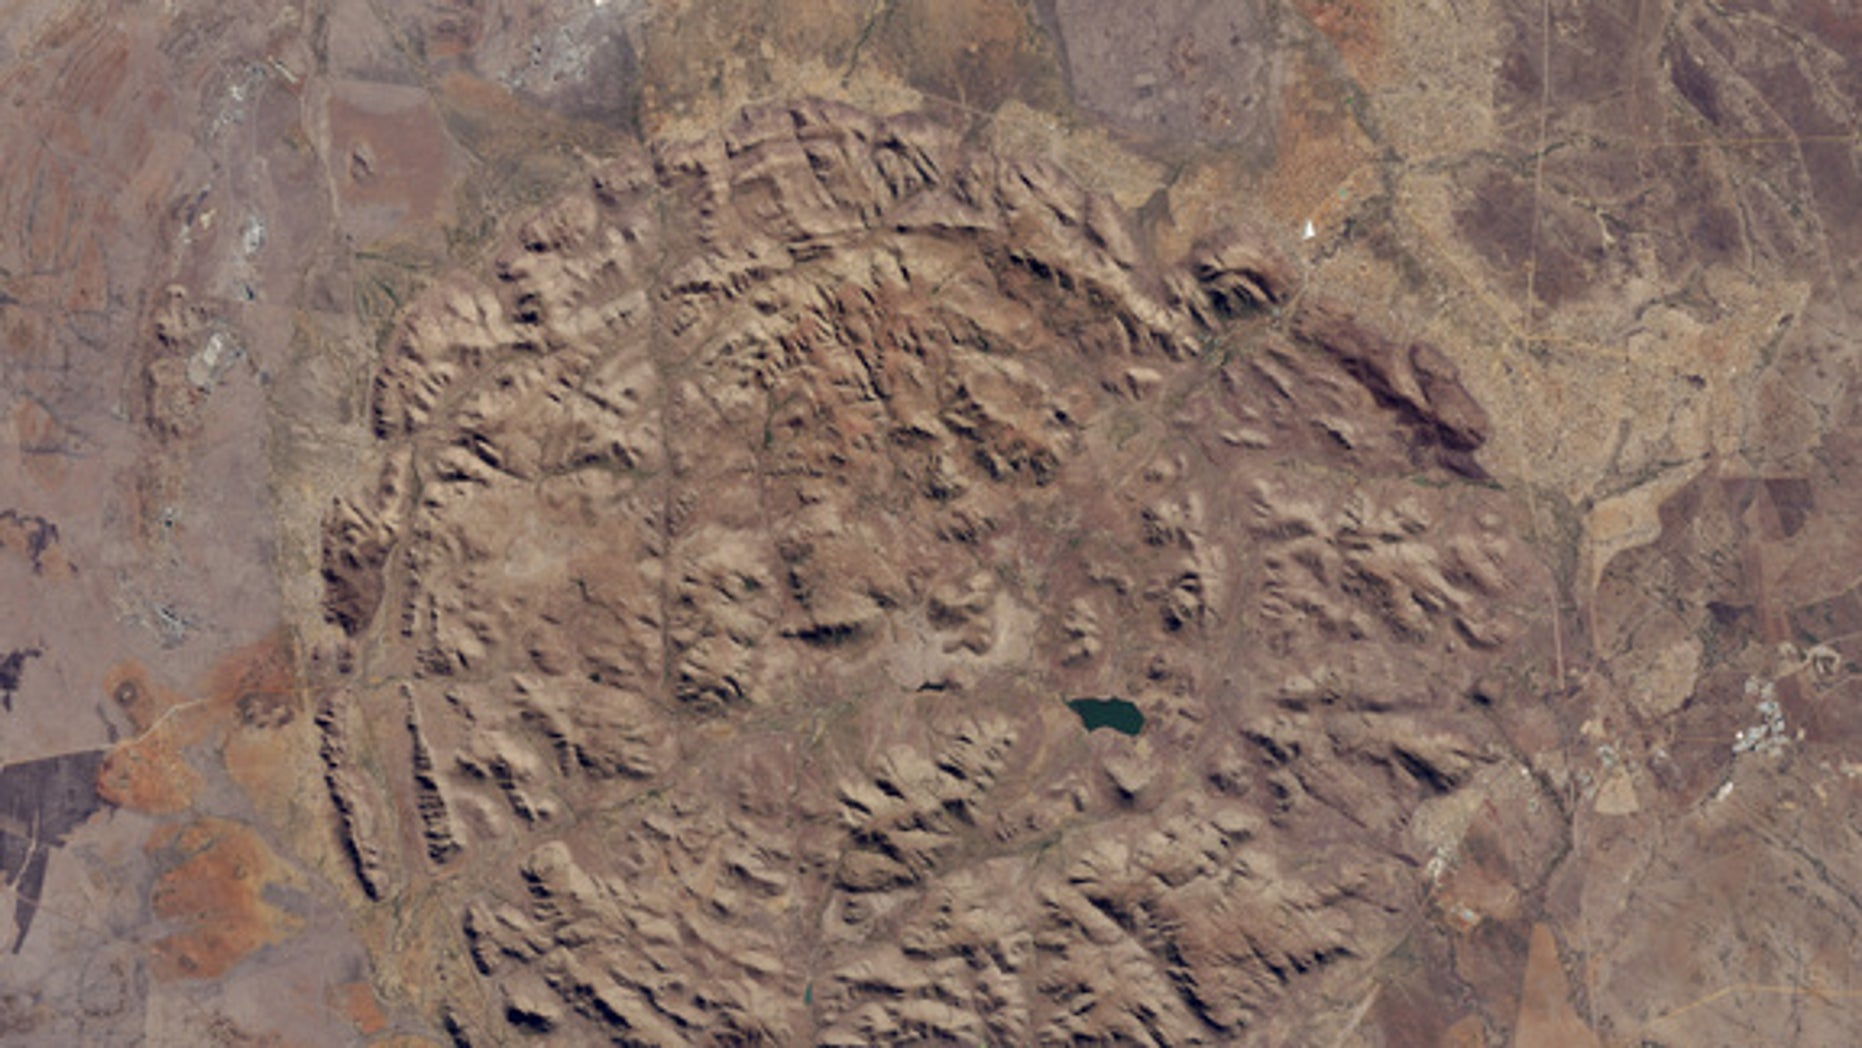 Aerial image of the Pilanesberg National Park in South Africa captured by the Operational Land Imager on Landsat 8 by NASA Earth Observatory.